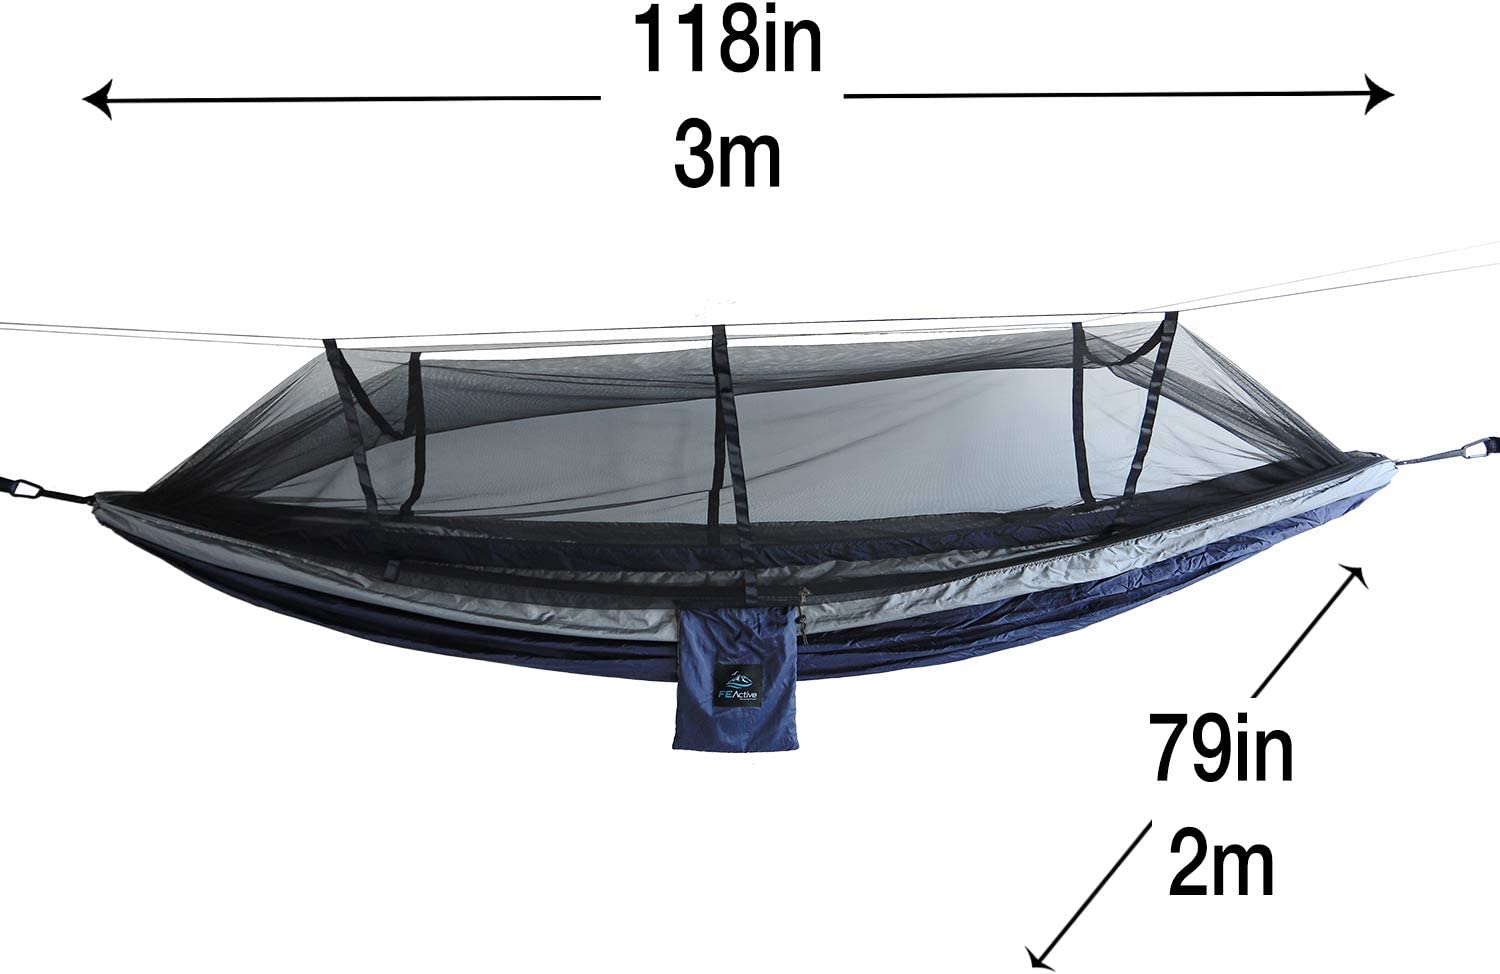 FE Active – Camping Hammock Portable Lightweight 2 Person Double Hammock with Mosquito Net for Outdoors, Camping, Backpacking, Hiking, Trekking Designed in California, USA